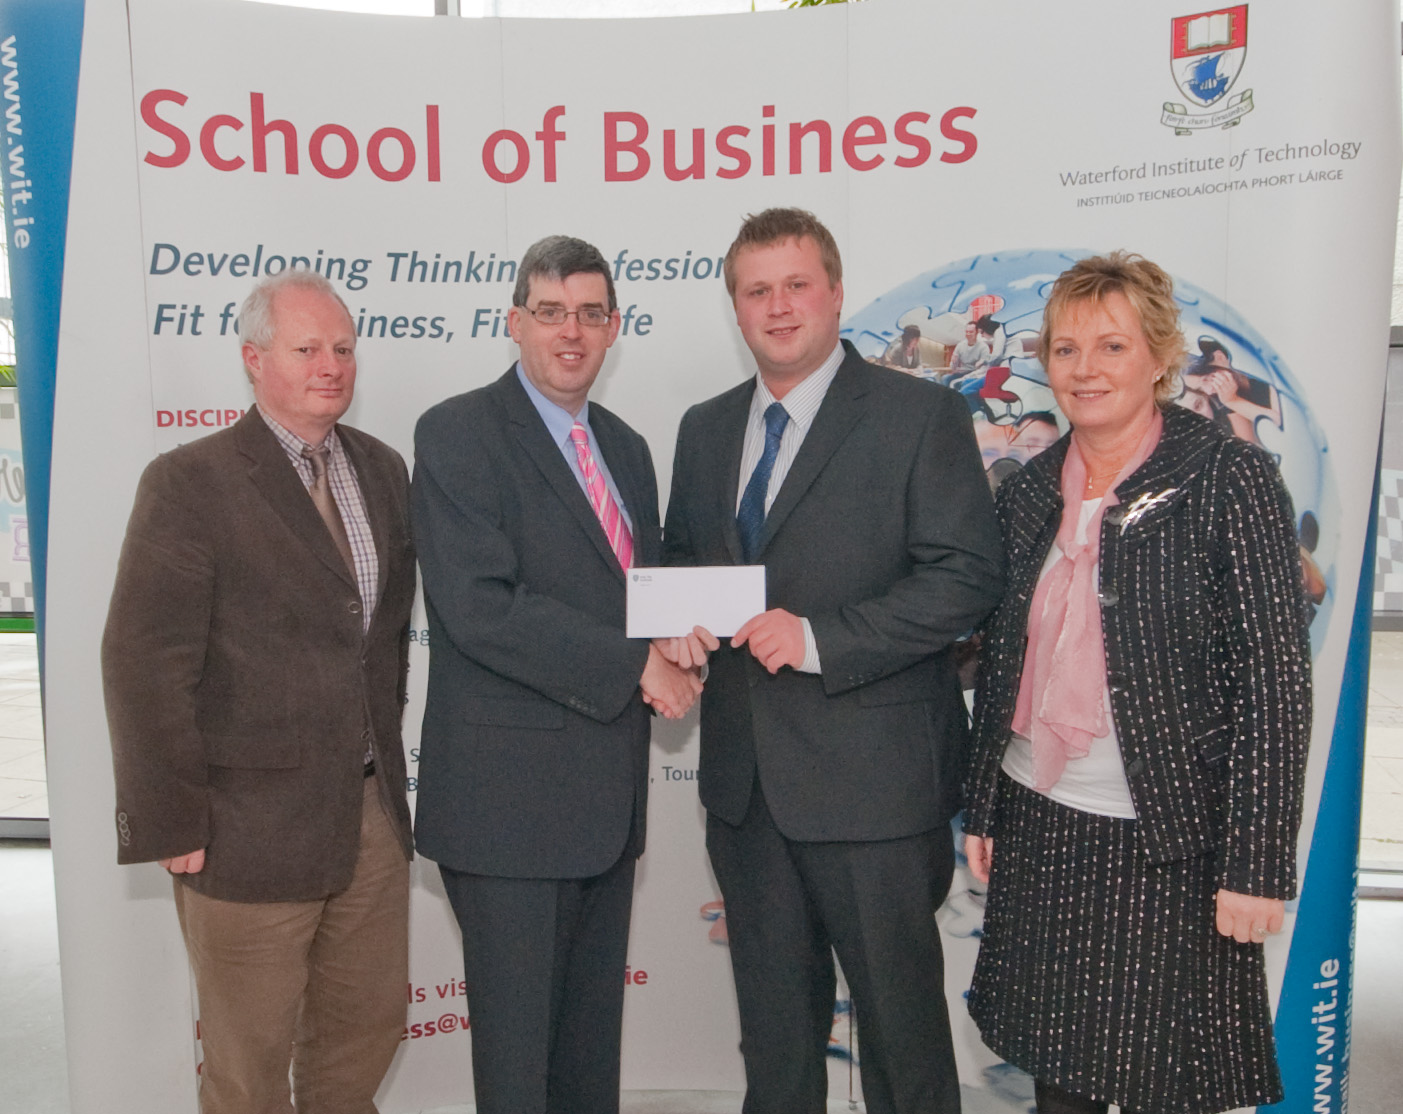 Pictured: John Greene receiving the Institute of Taxation Award from Ger Long, School of Business WIT